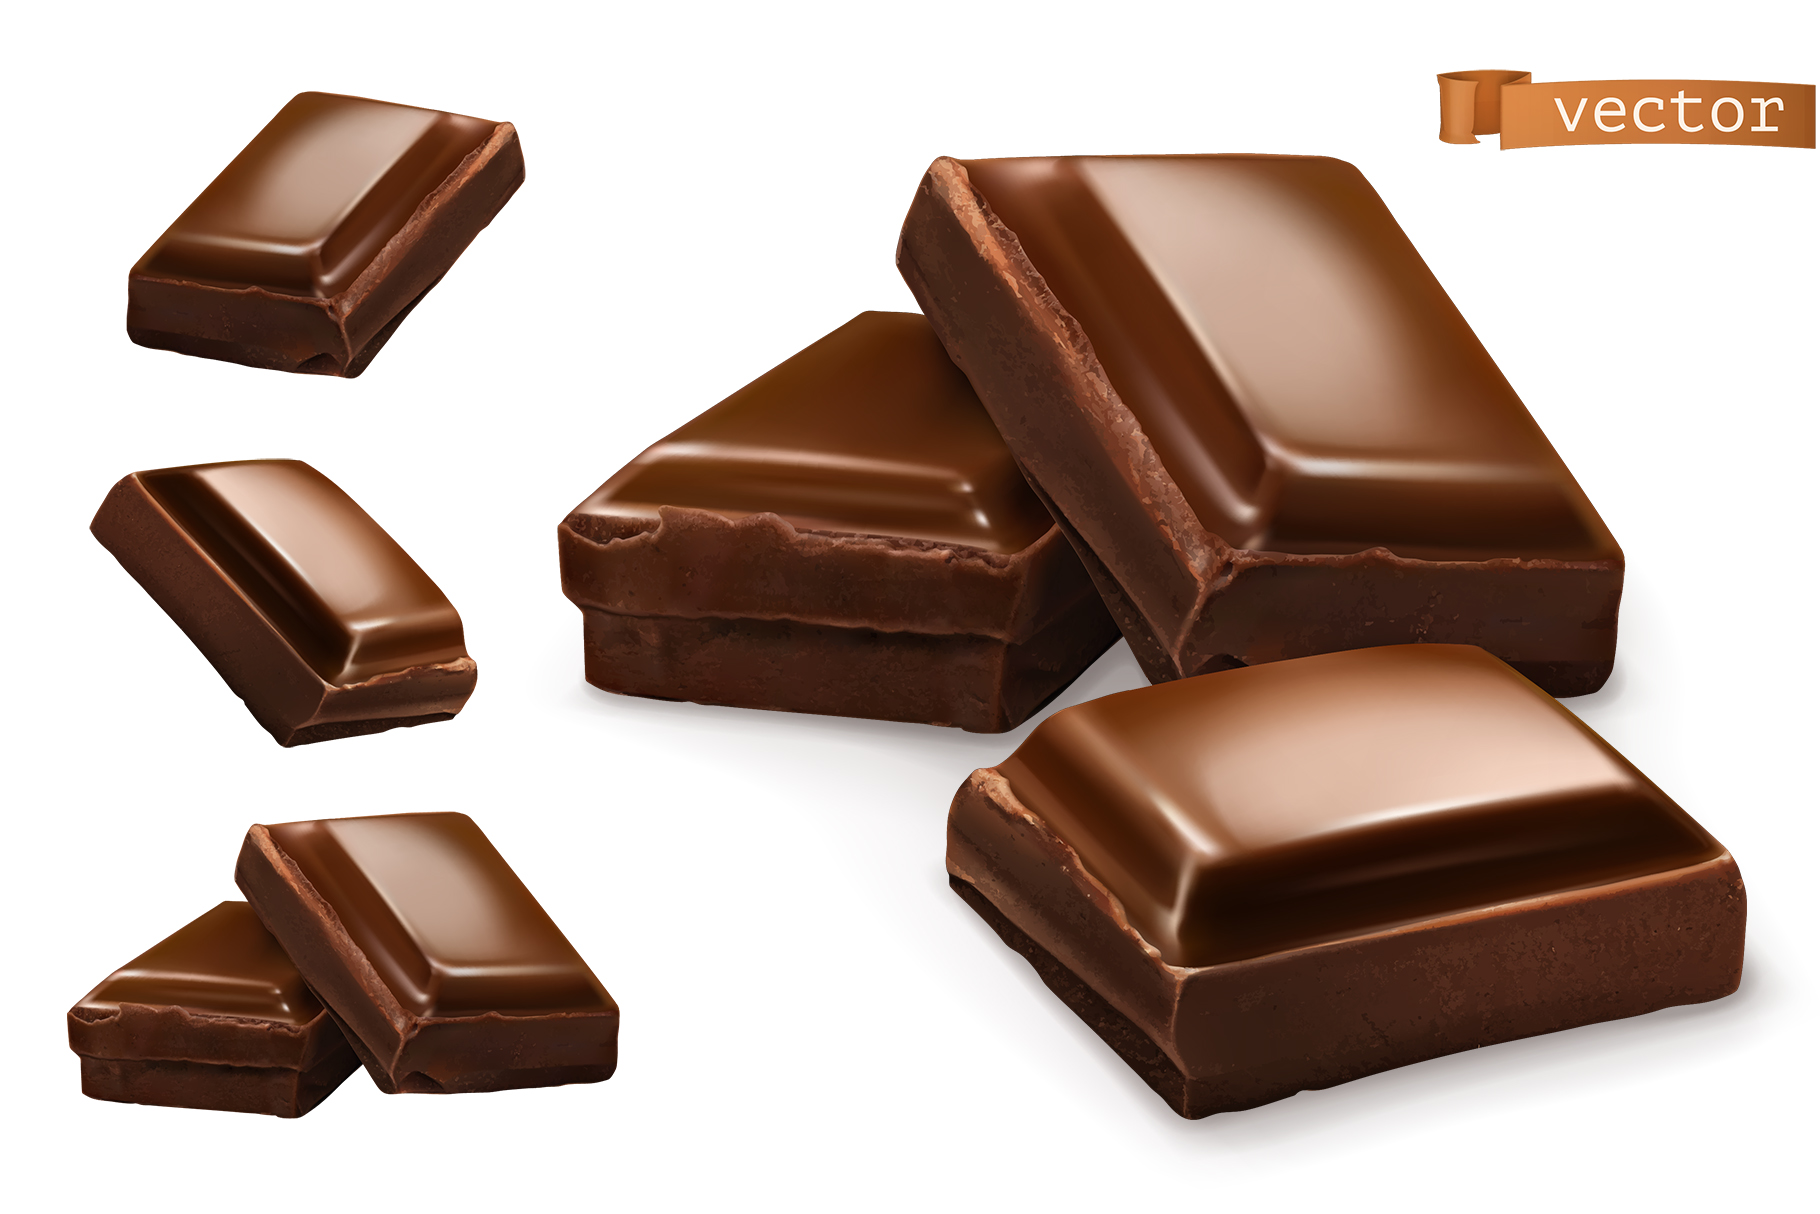 Chocolate bar, chocolate shavings, pieces, cocoa, vector set example image 3